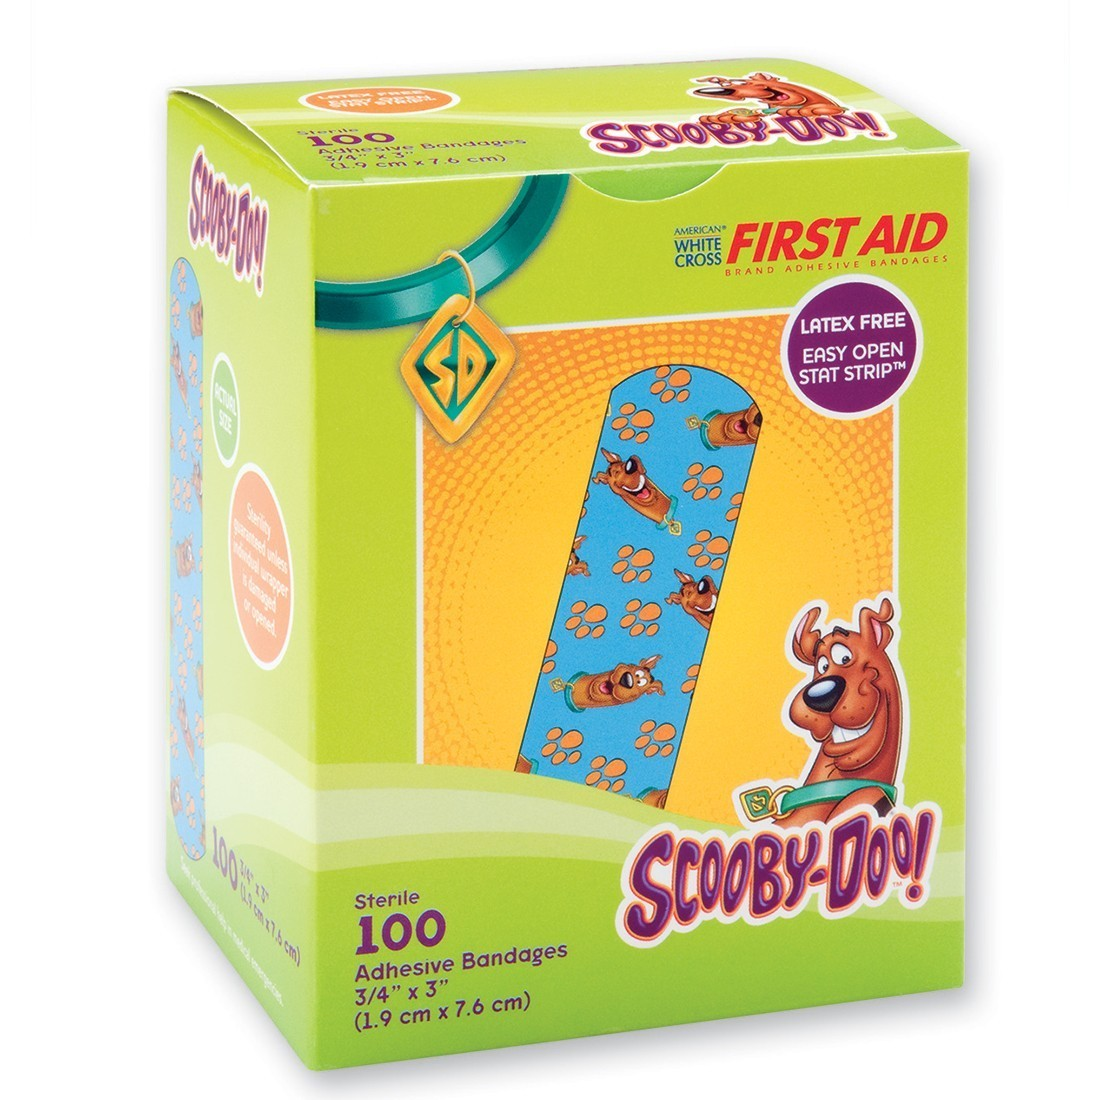 First Aid Case Scooby-Doo™ Bandages [image]